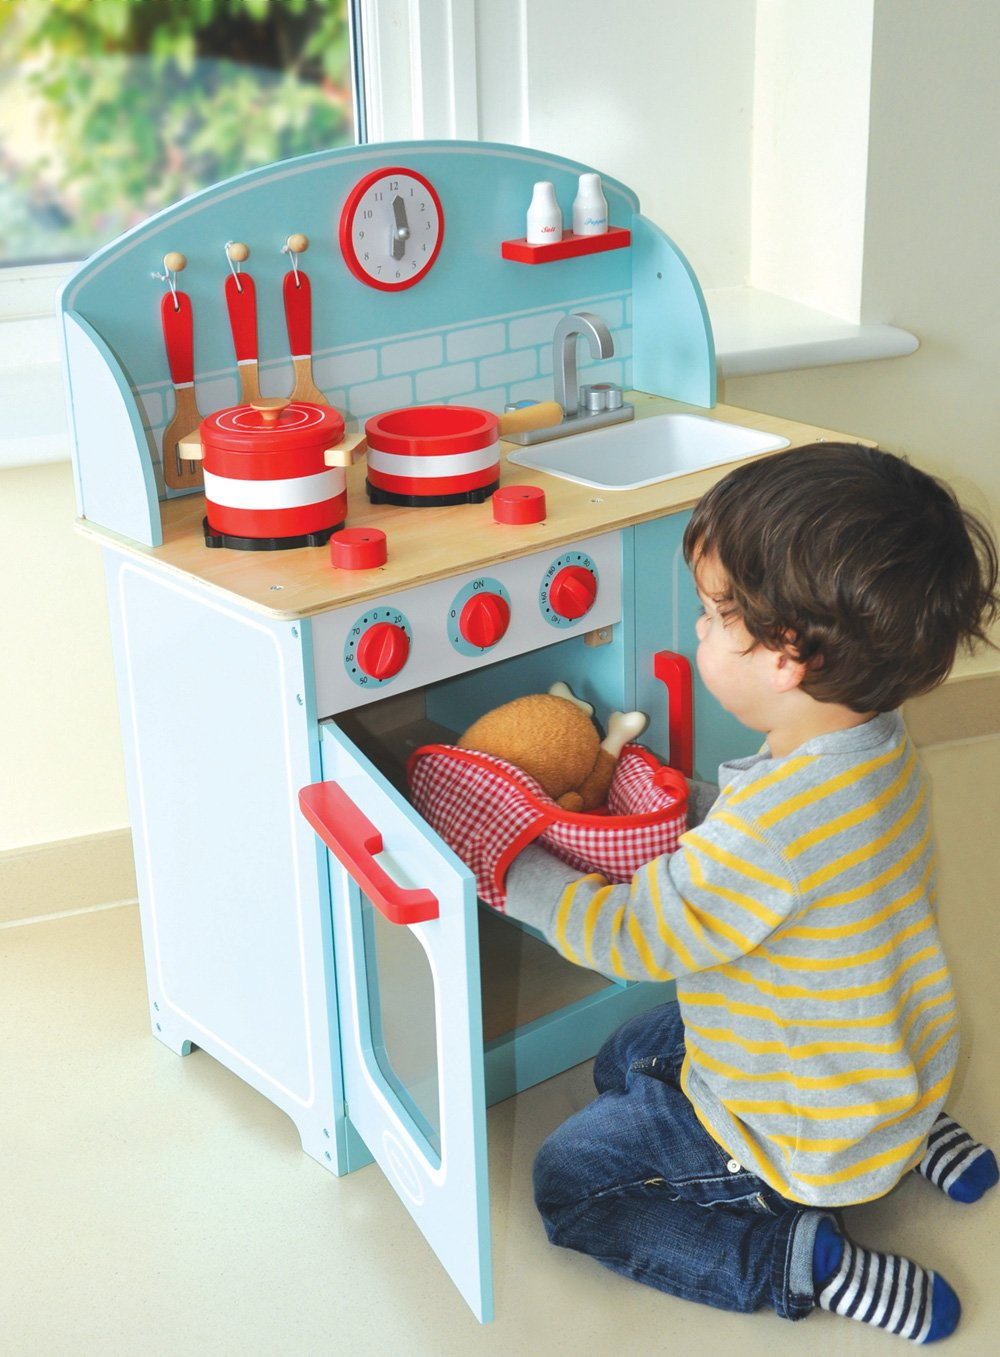 Red Pretend Play Wooden Kitchen Unit with Movable Parts annd Accessories Indigo Jamm Mini Cooker